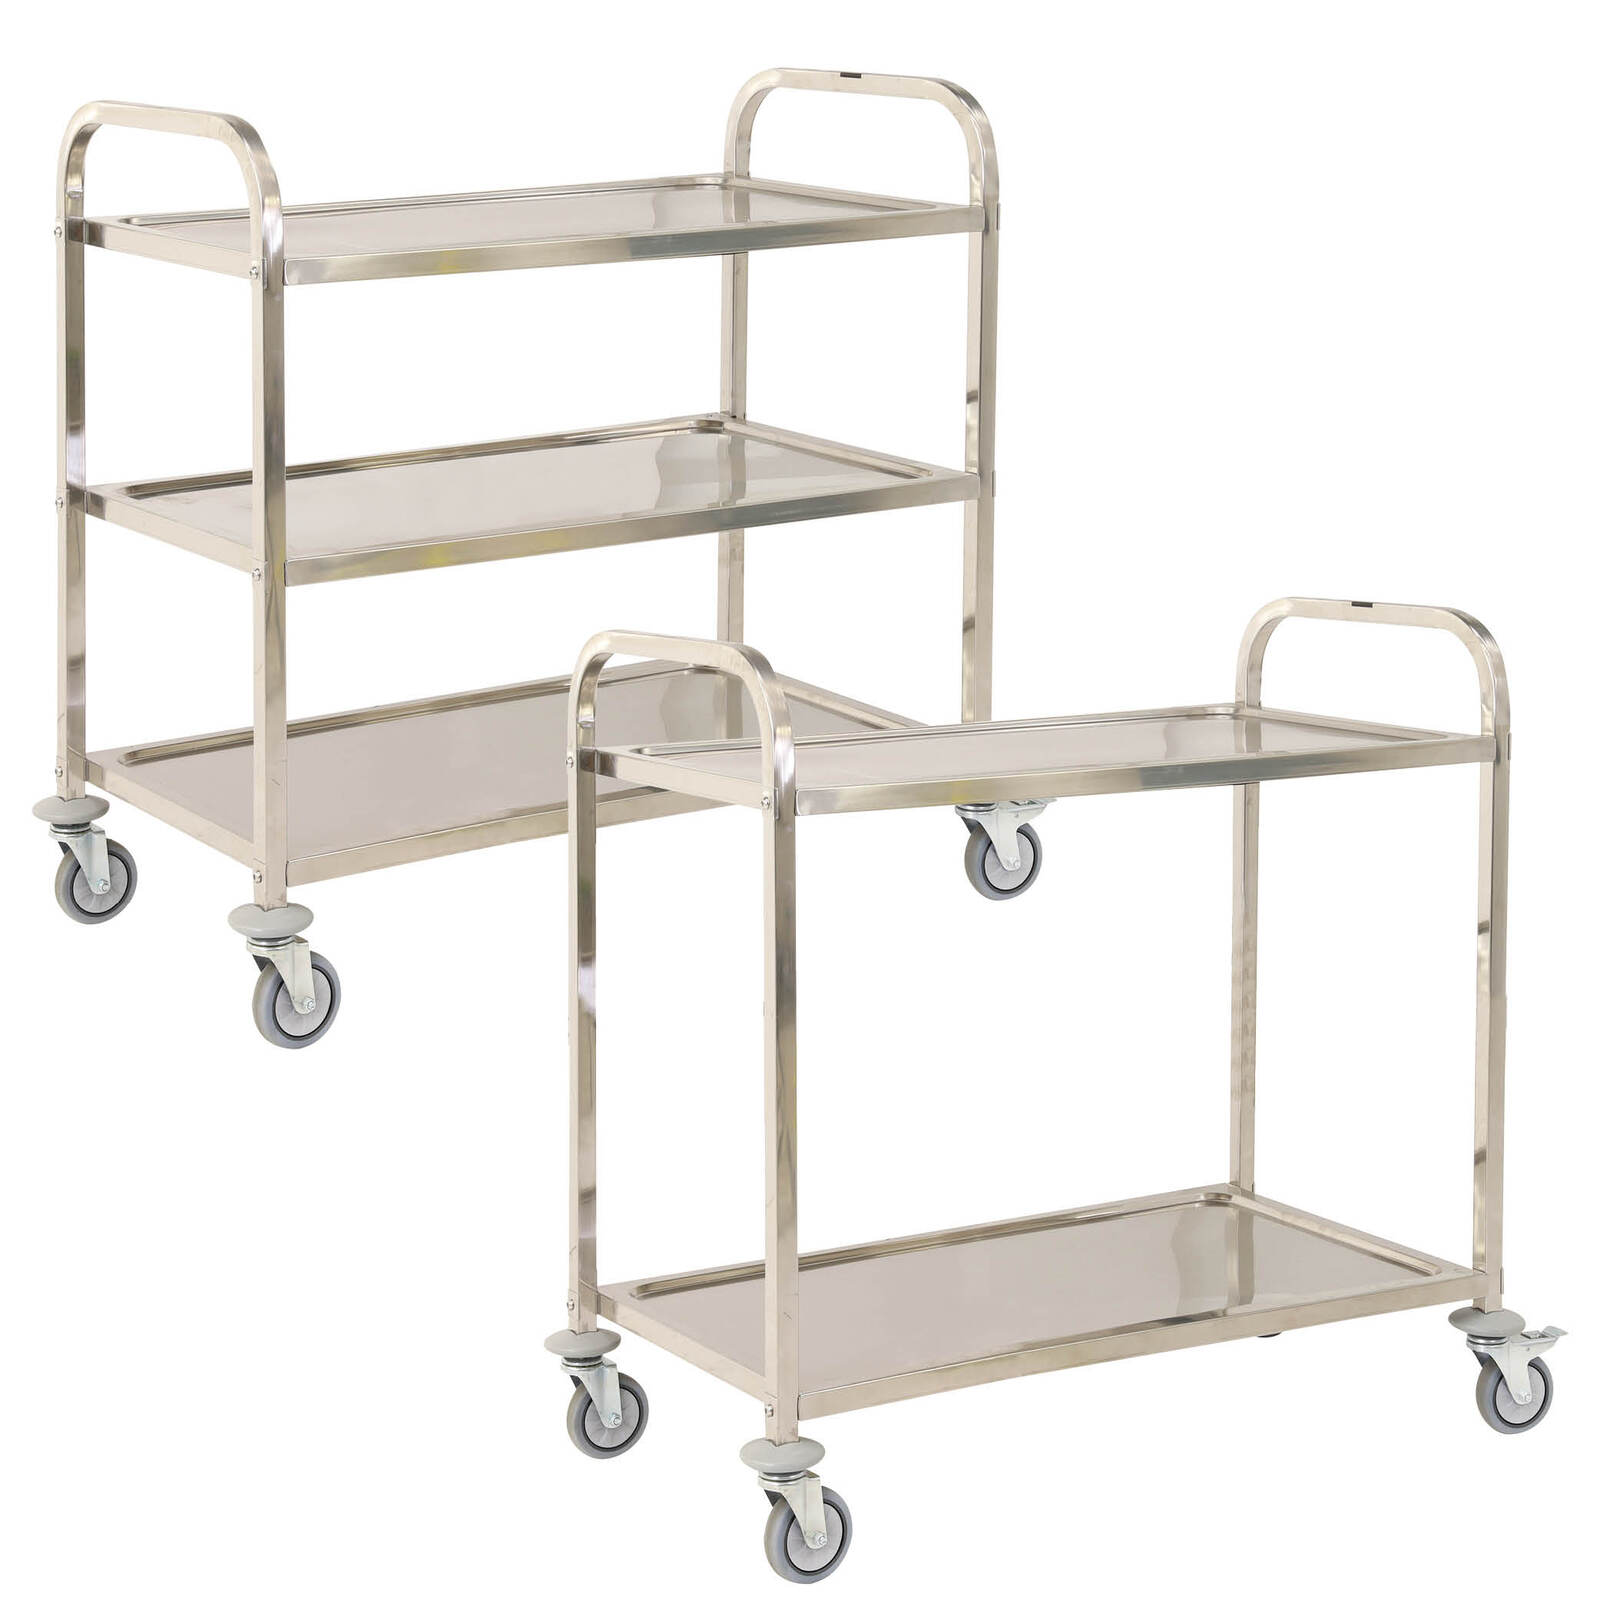 3 Tier Stainless Steel Utility Cart